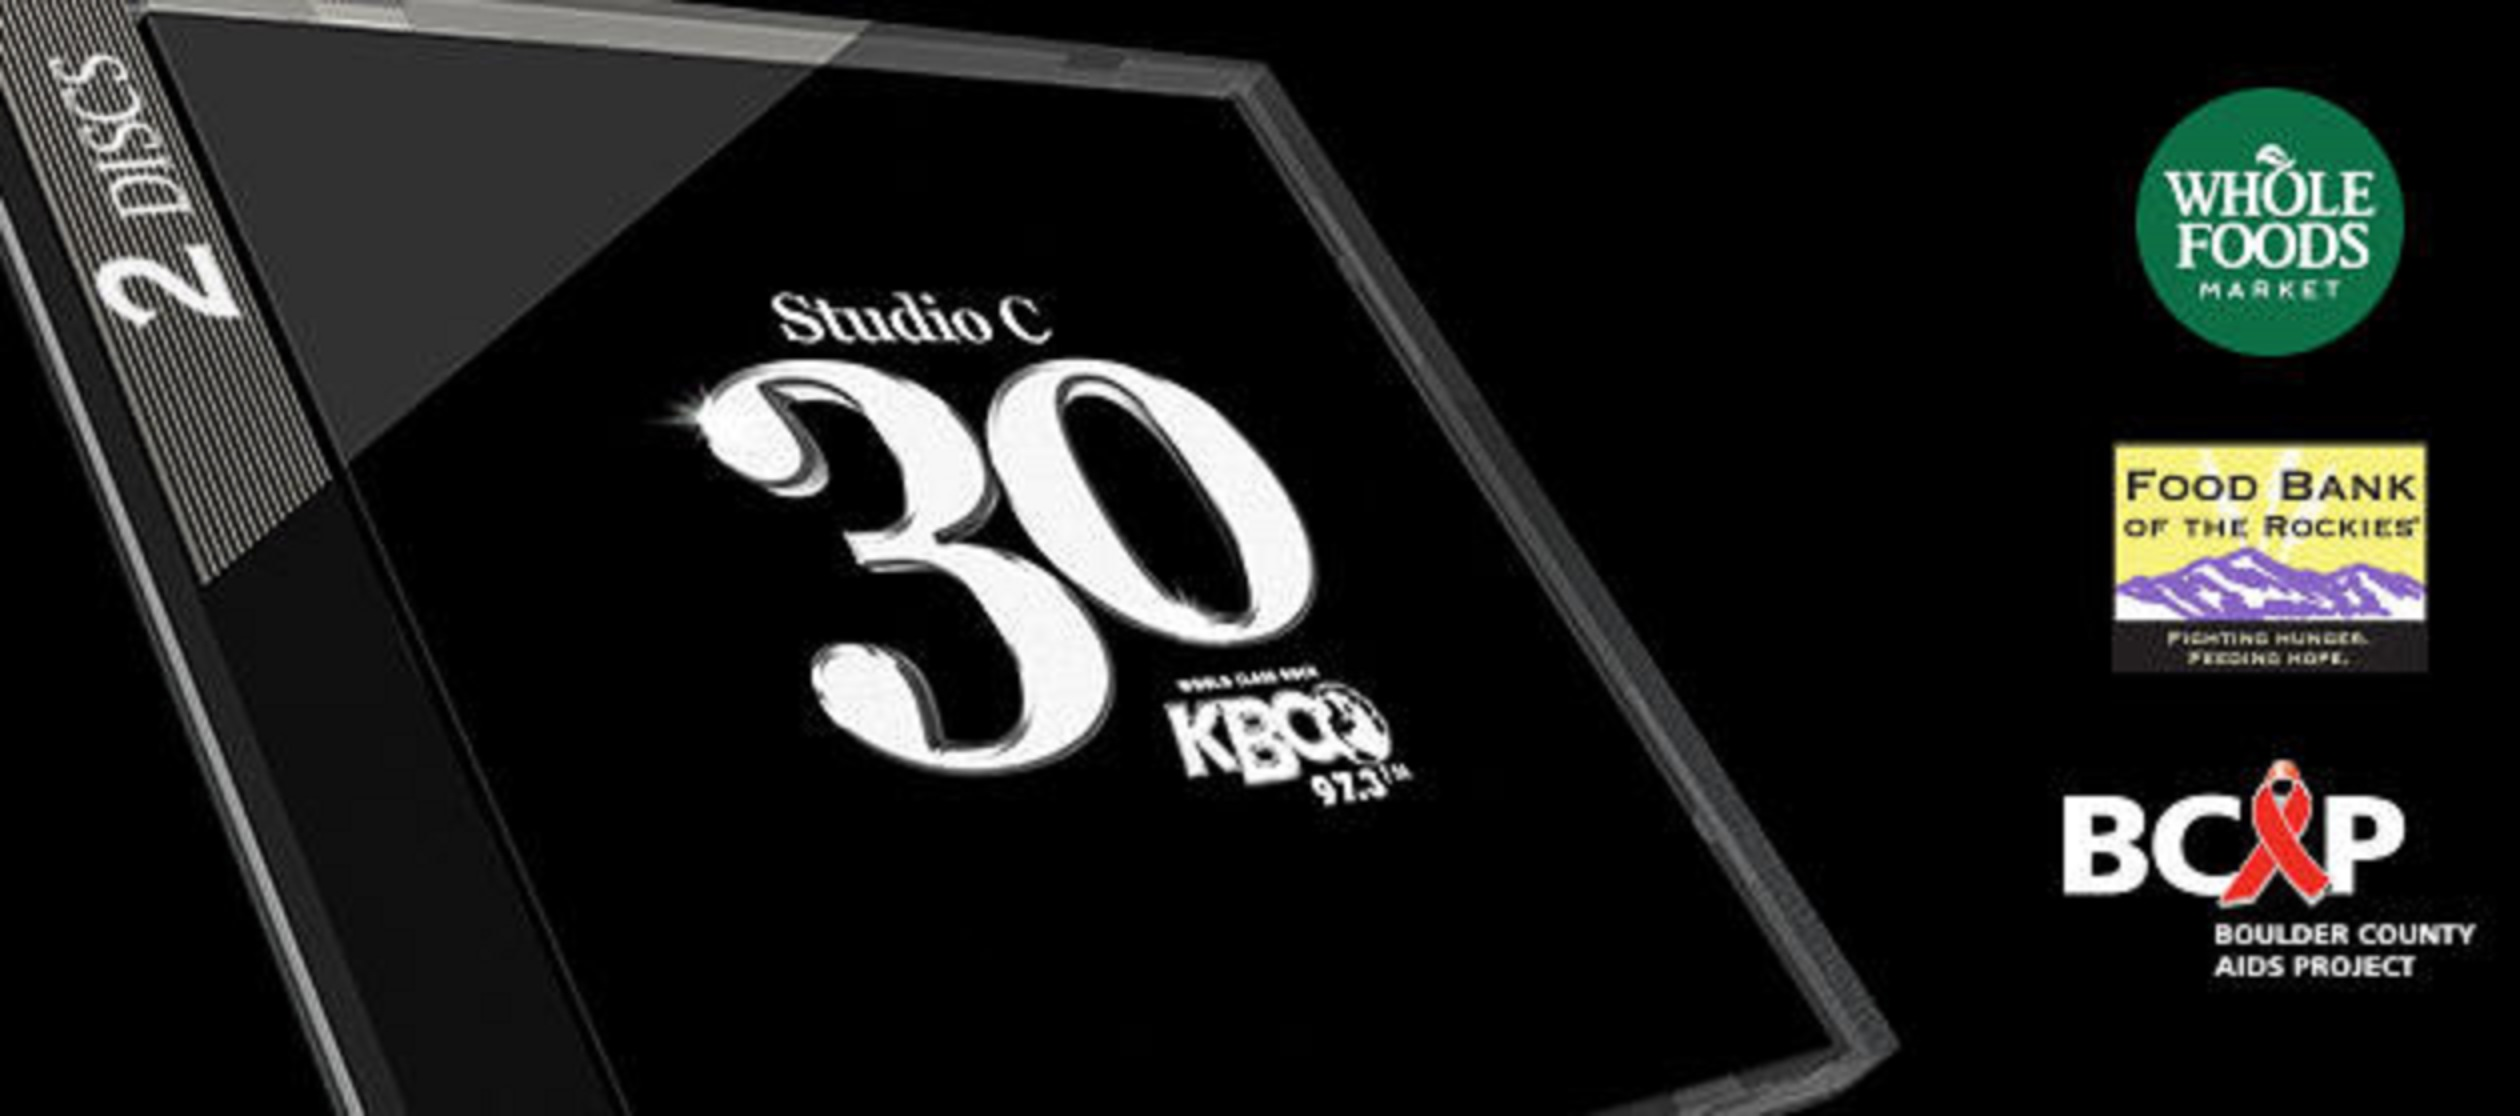 KBCO Announces Studio C 30th Anniversary 2-CD Release Date & Track Listing